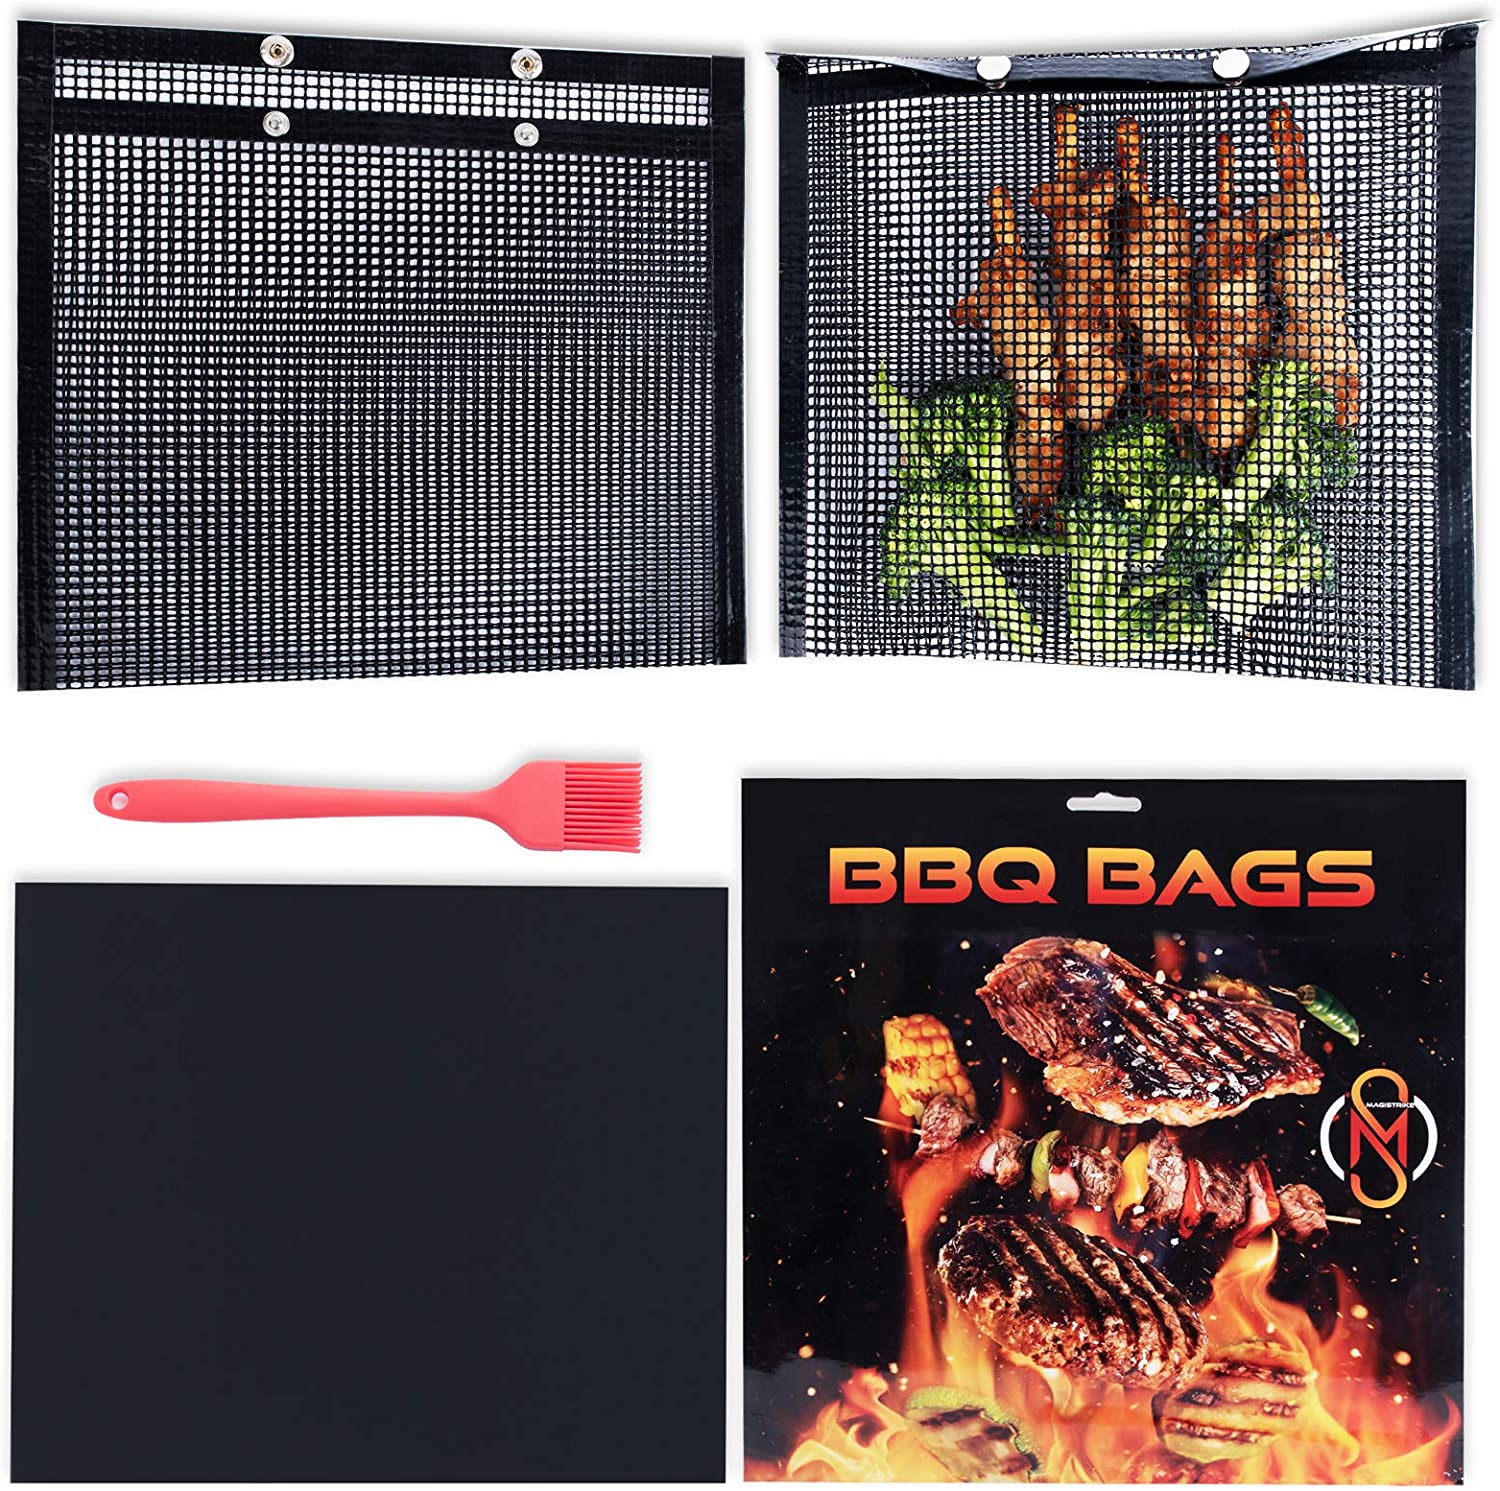 Mesh Grill Bags Combo Set - 2 Pcs Barbecue Cook Pouch 1 Pc Mat and Silicone Brush-Non-stick Reusable Tools for Outdoor Grilling Oven Gas Charcoal-Meat Fish Veggies Food Grillers-Must-have Bbq Items